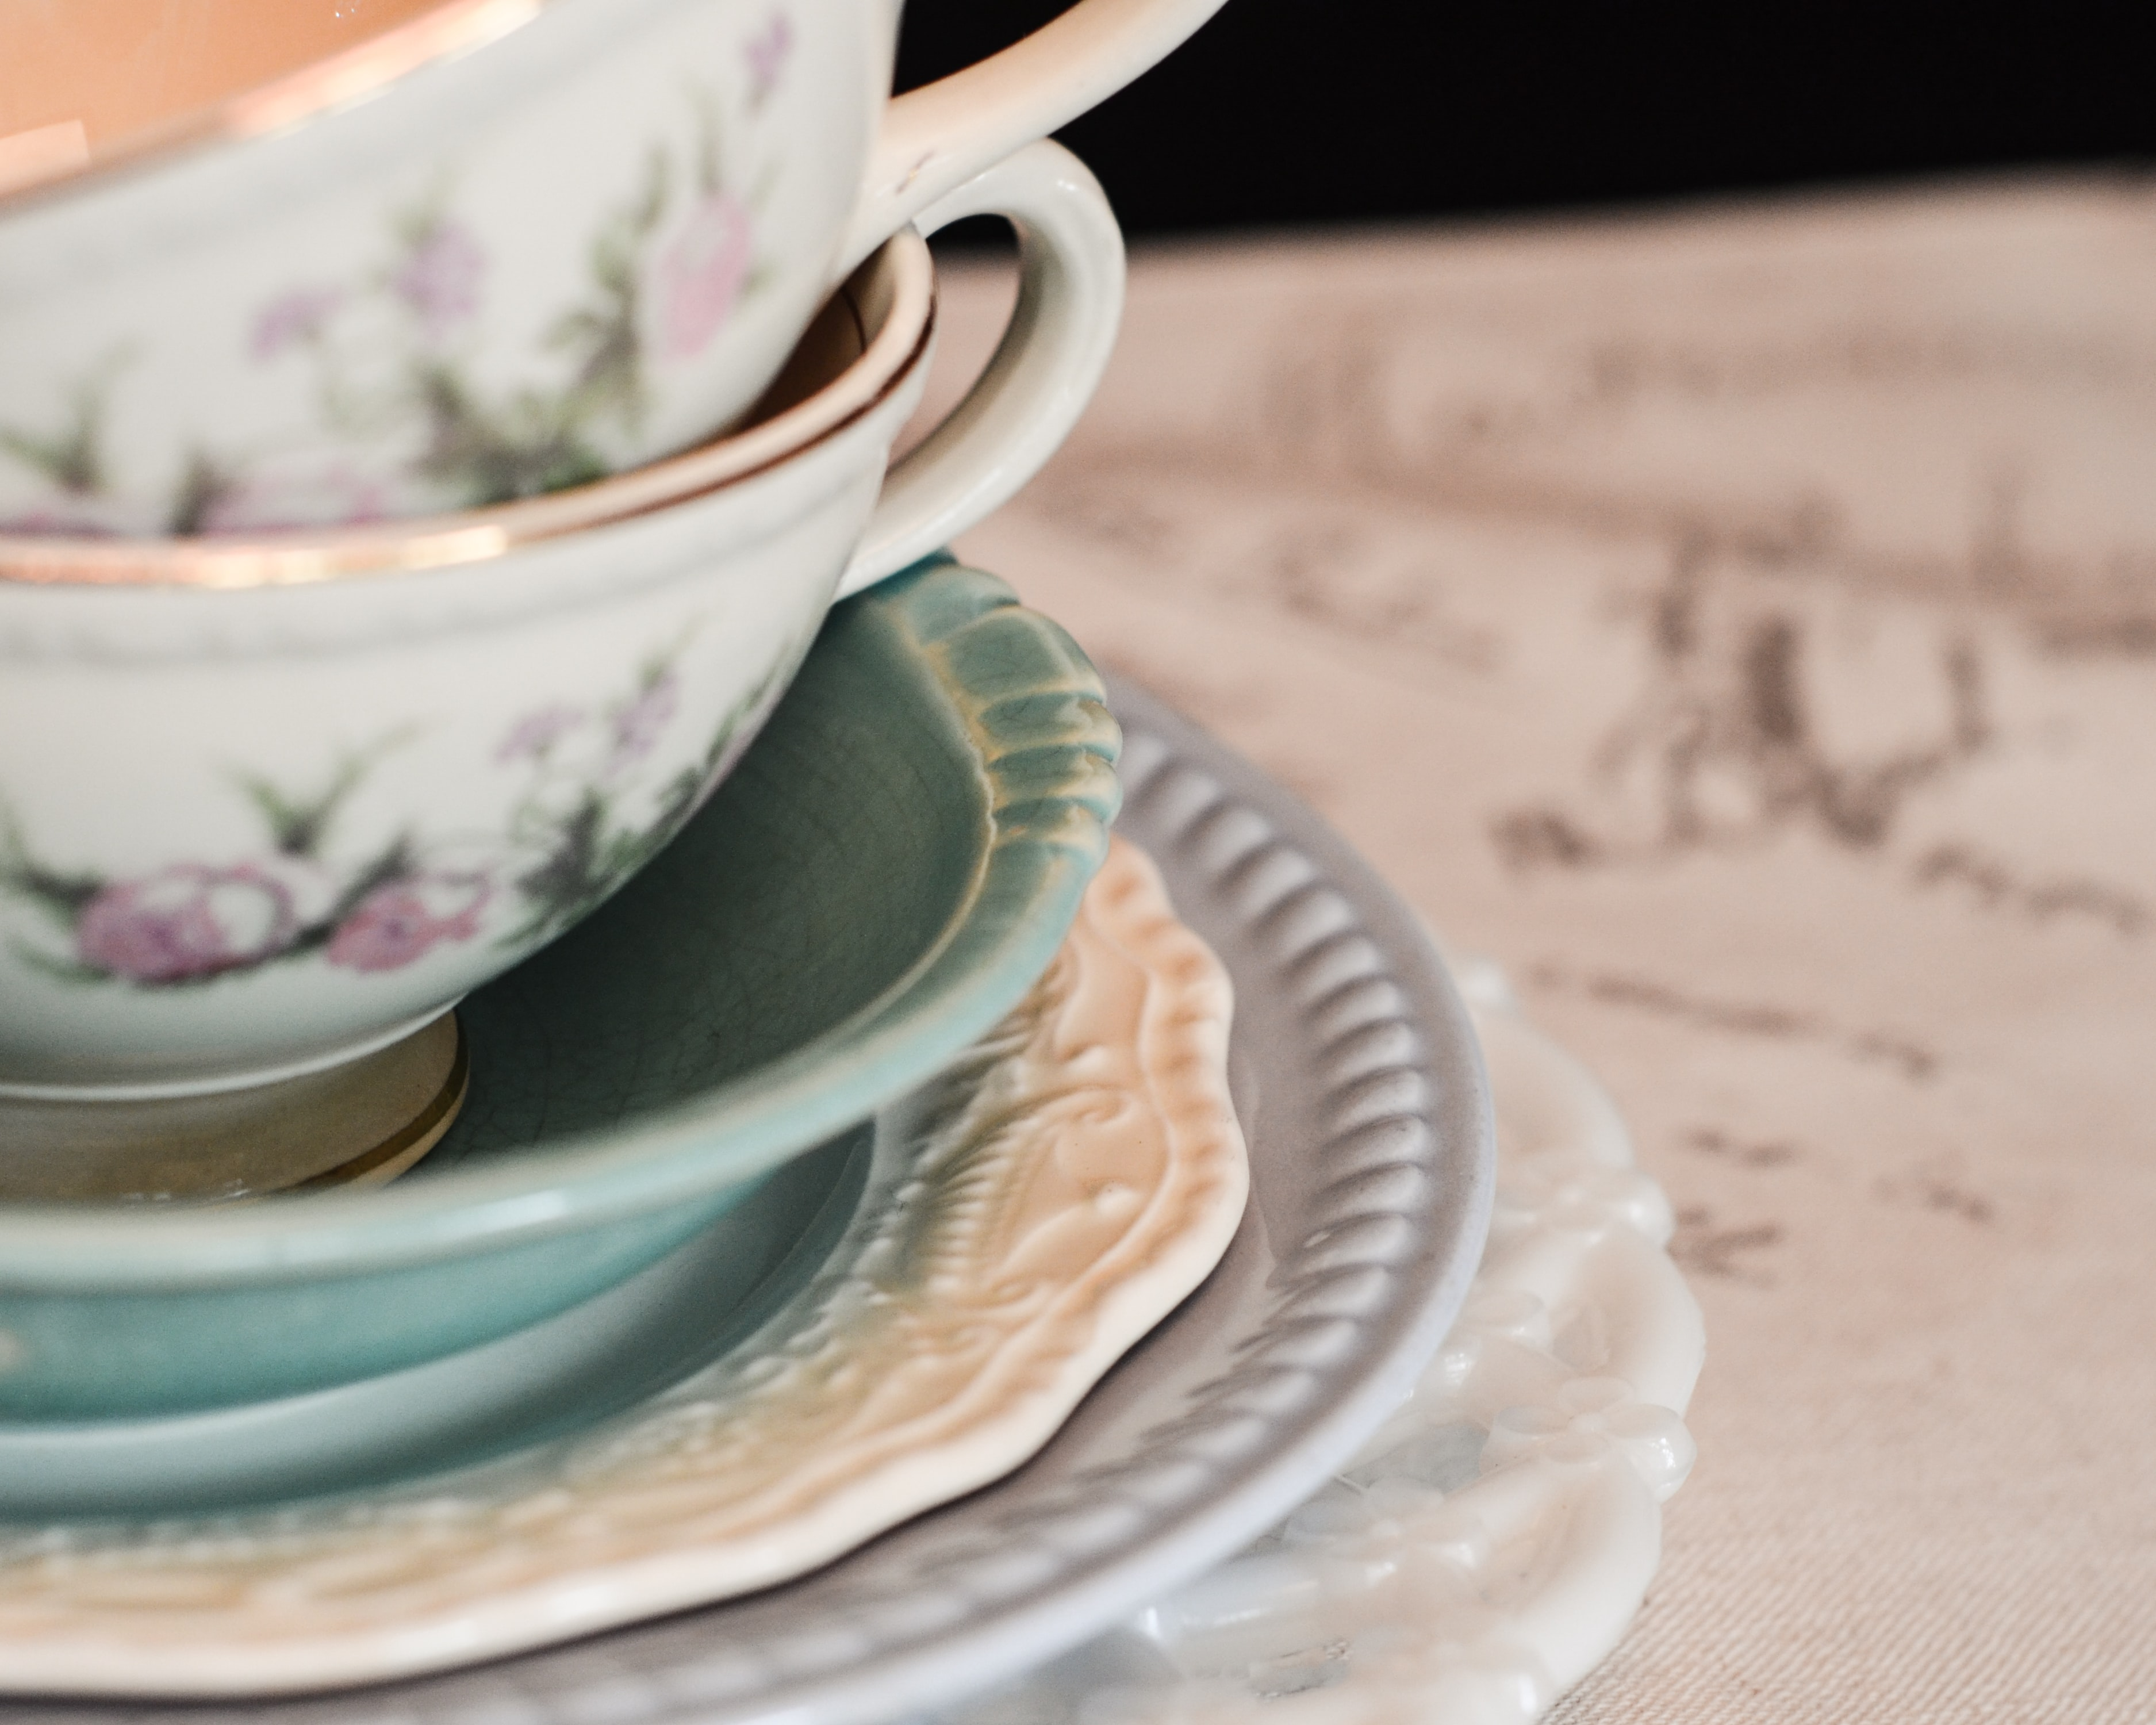 shallow focus photography of teal and white ceramic bowls and cups